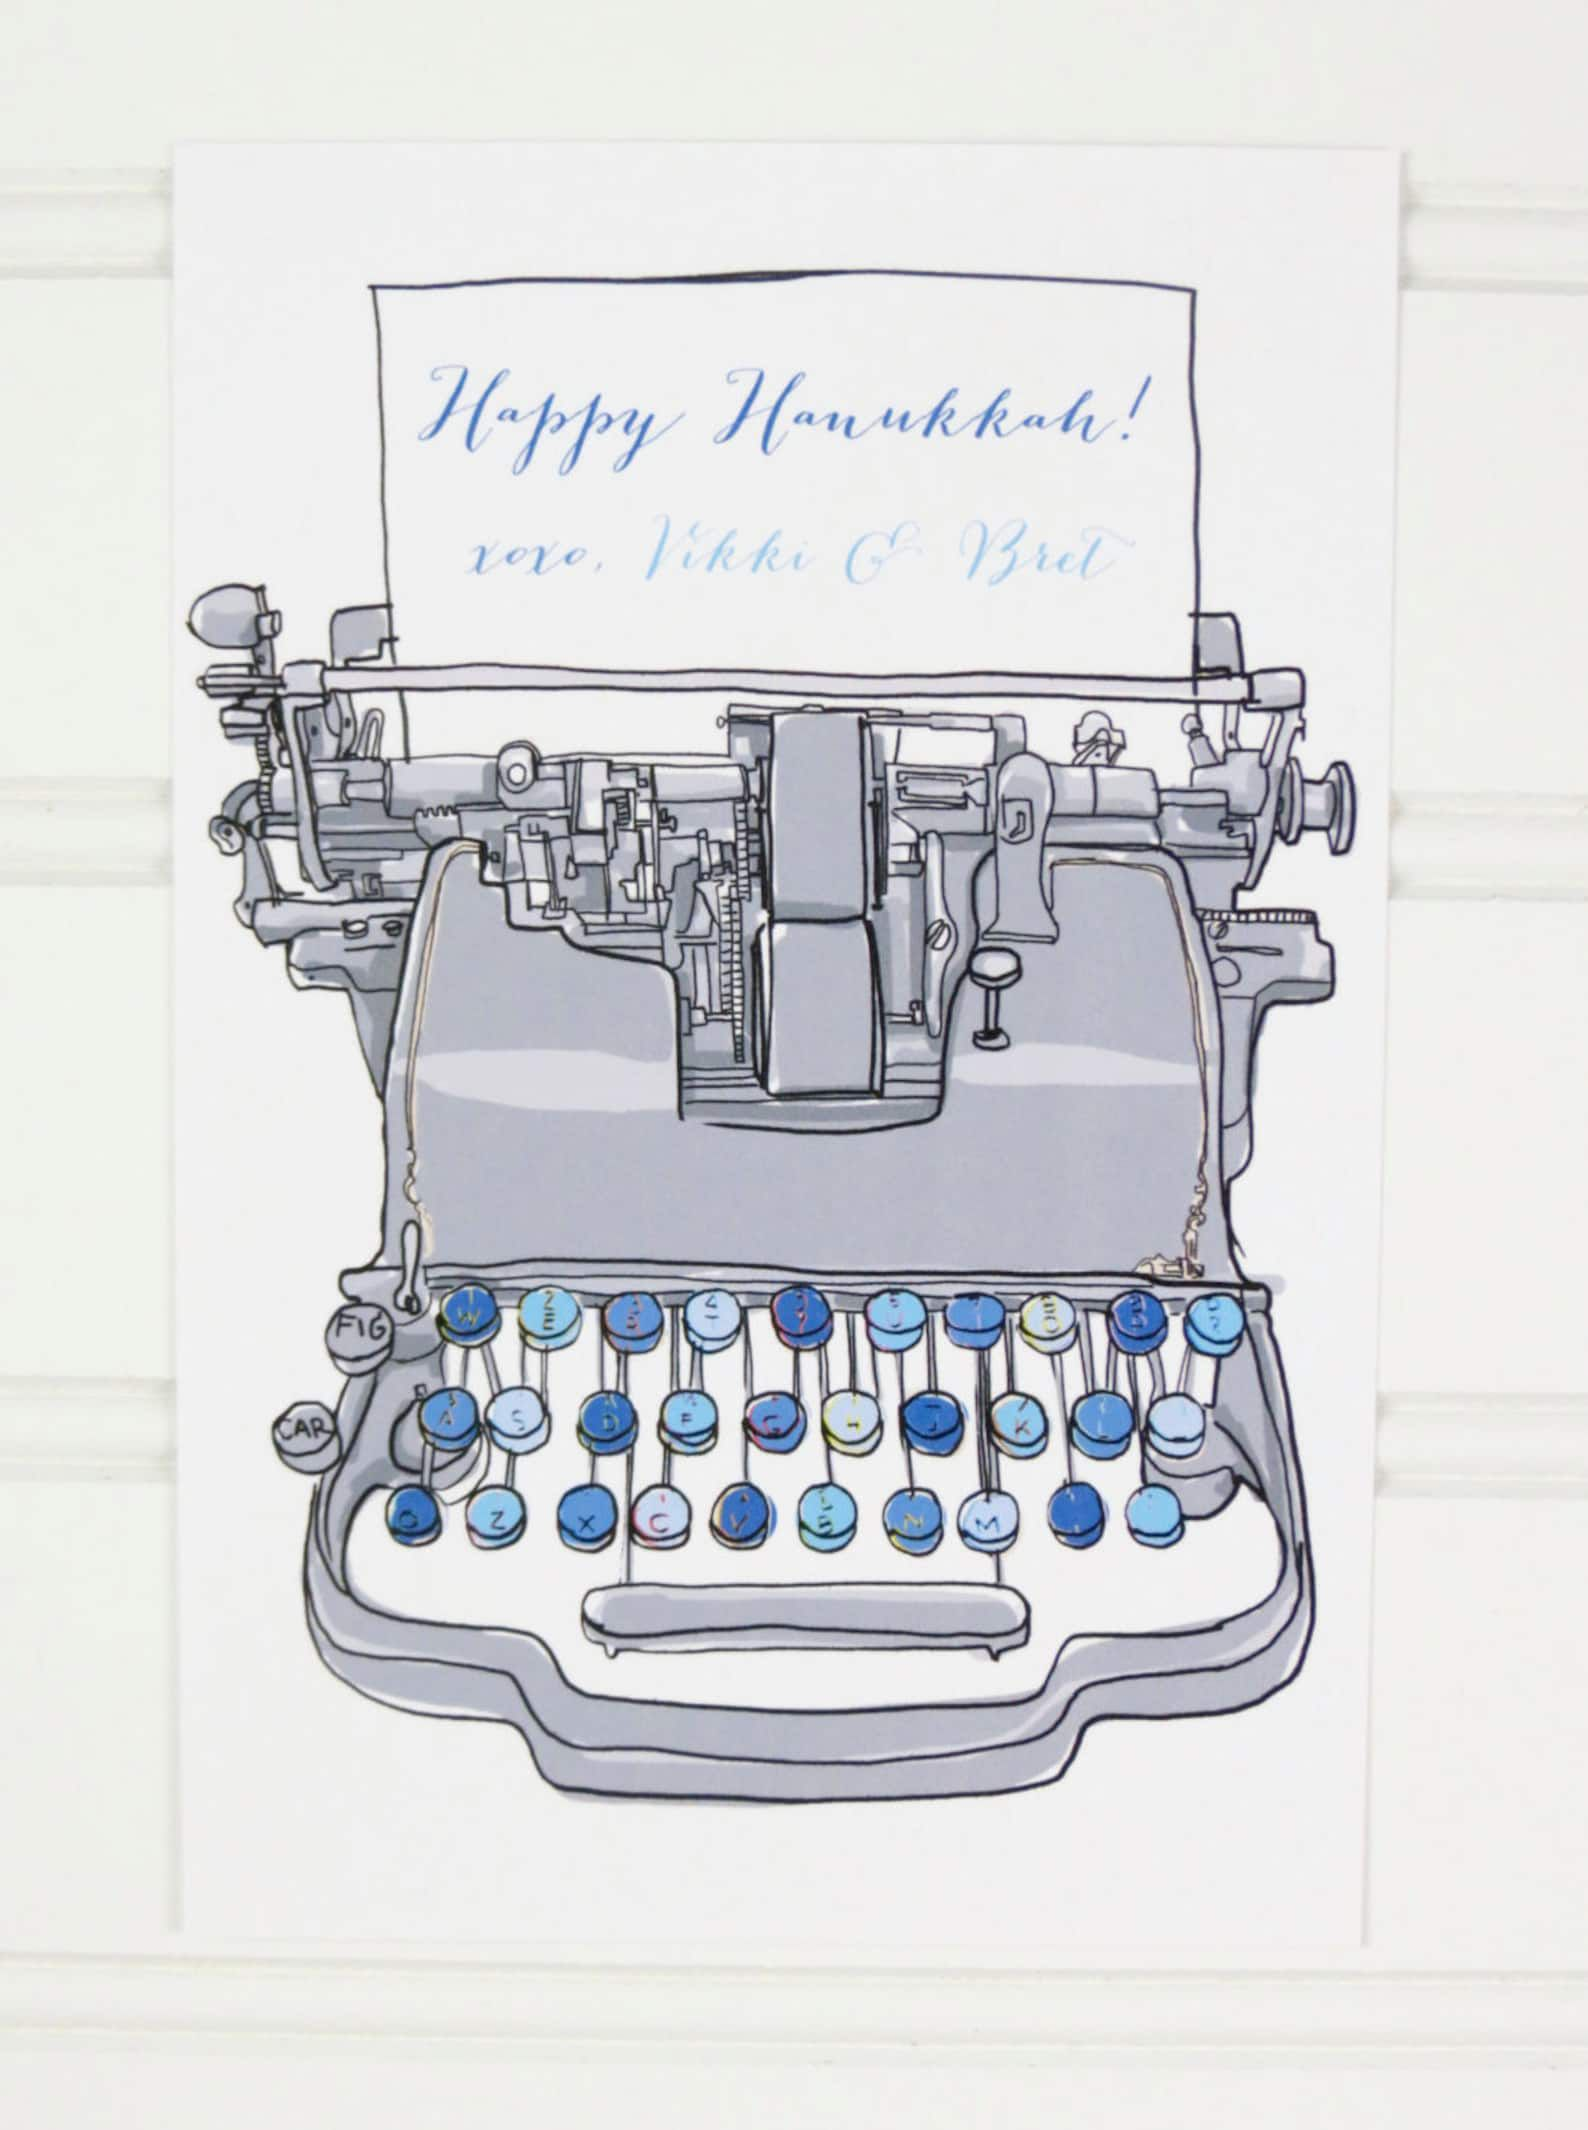 """A vintage blue typewriter typing out """"Happy Hanukkah"""" with space for a personalized message on a white postcard"""